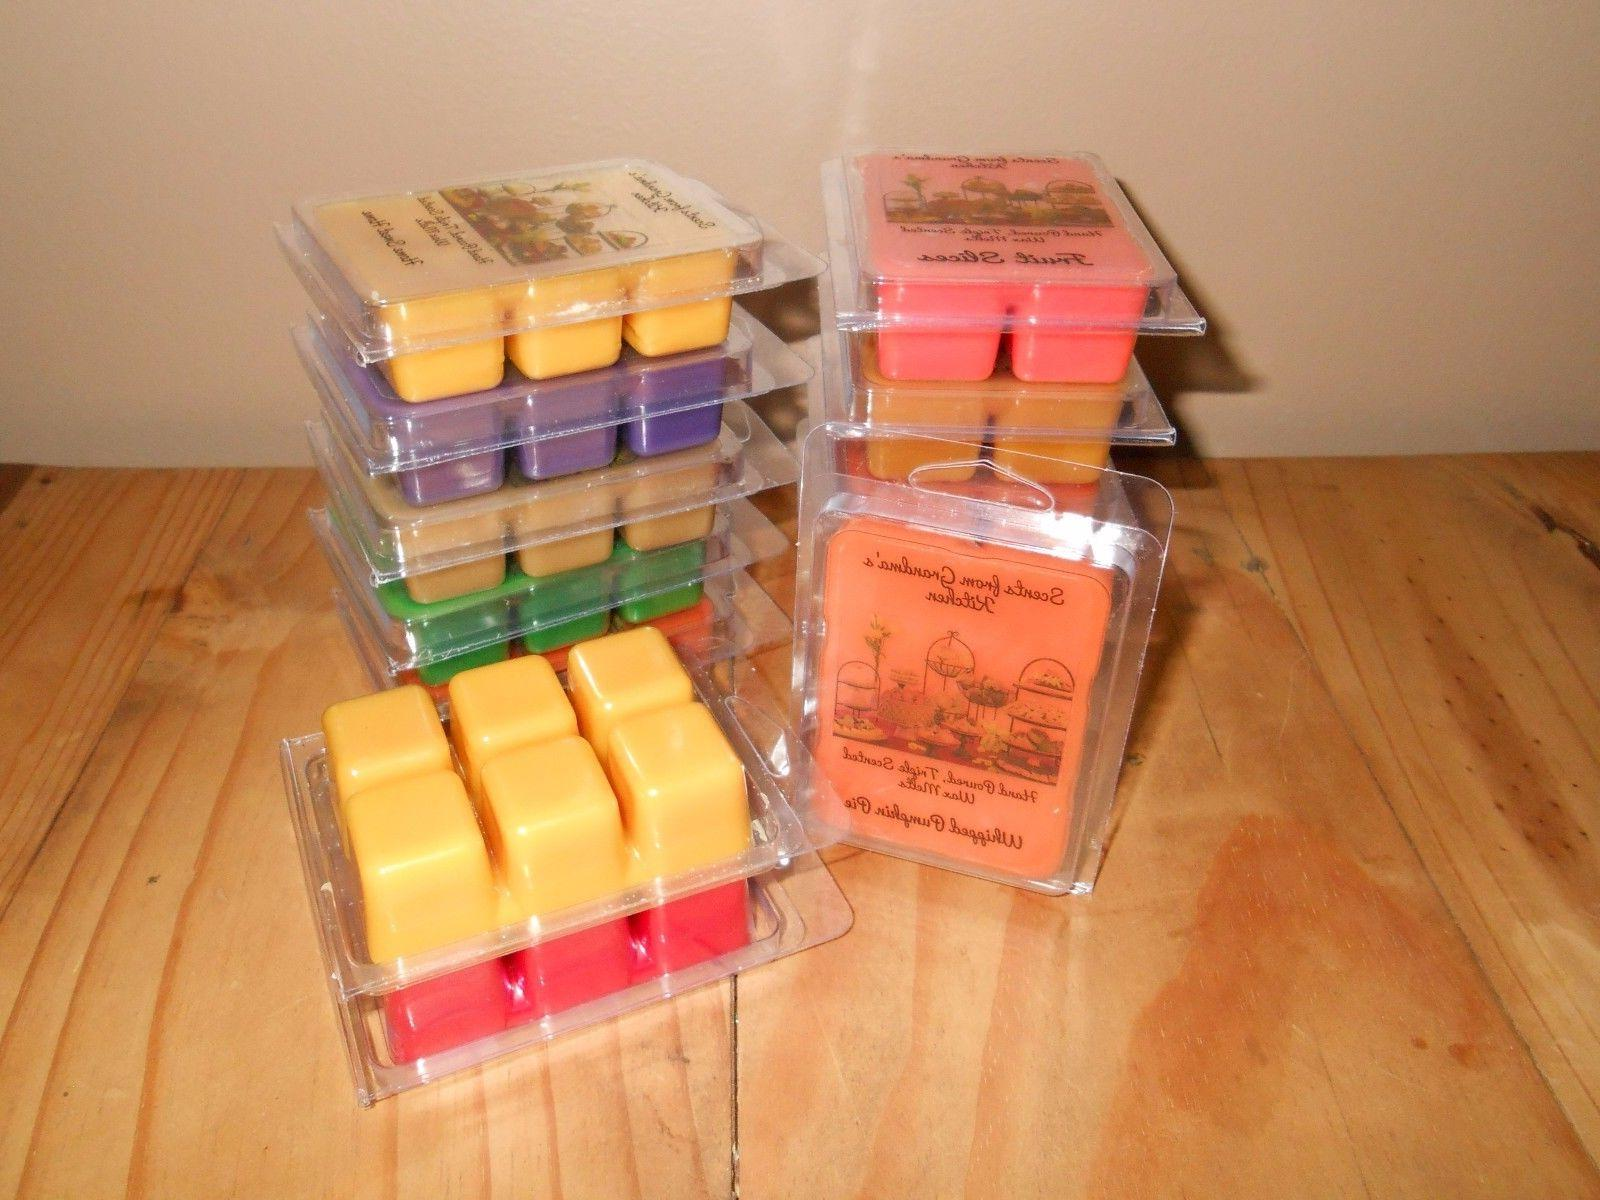 Scents *HEAVILY SCENTED* Melts cube pk